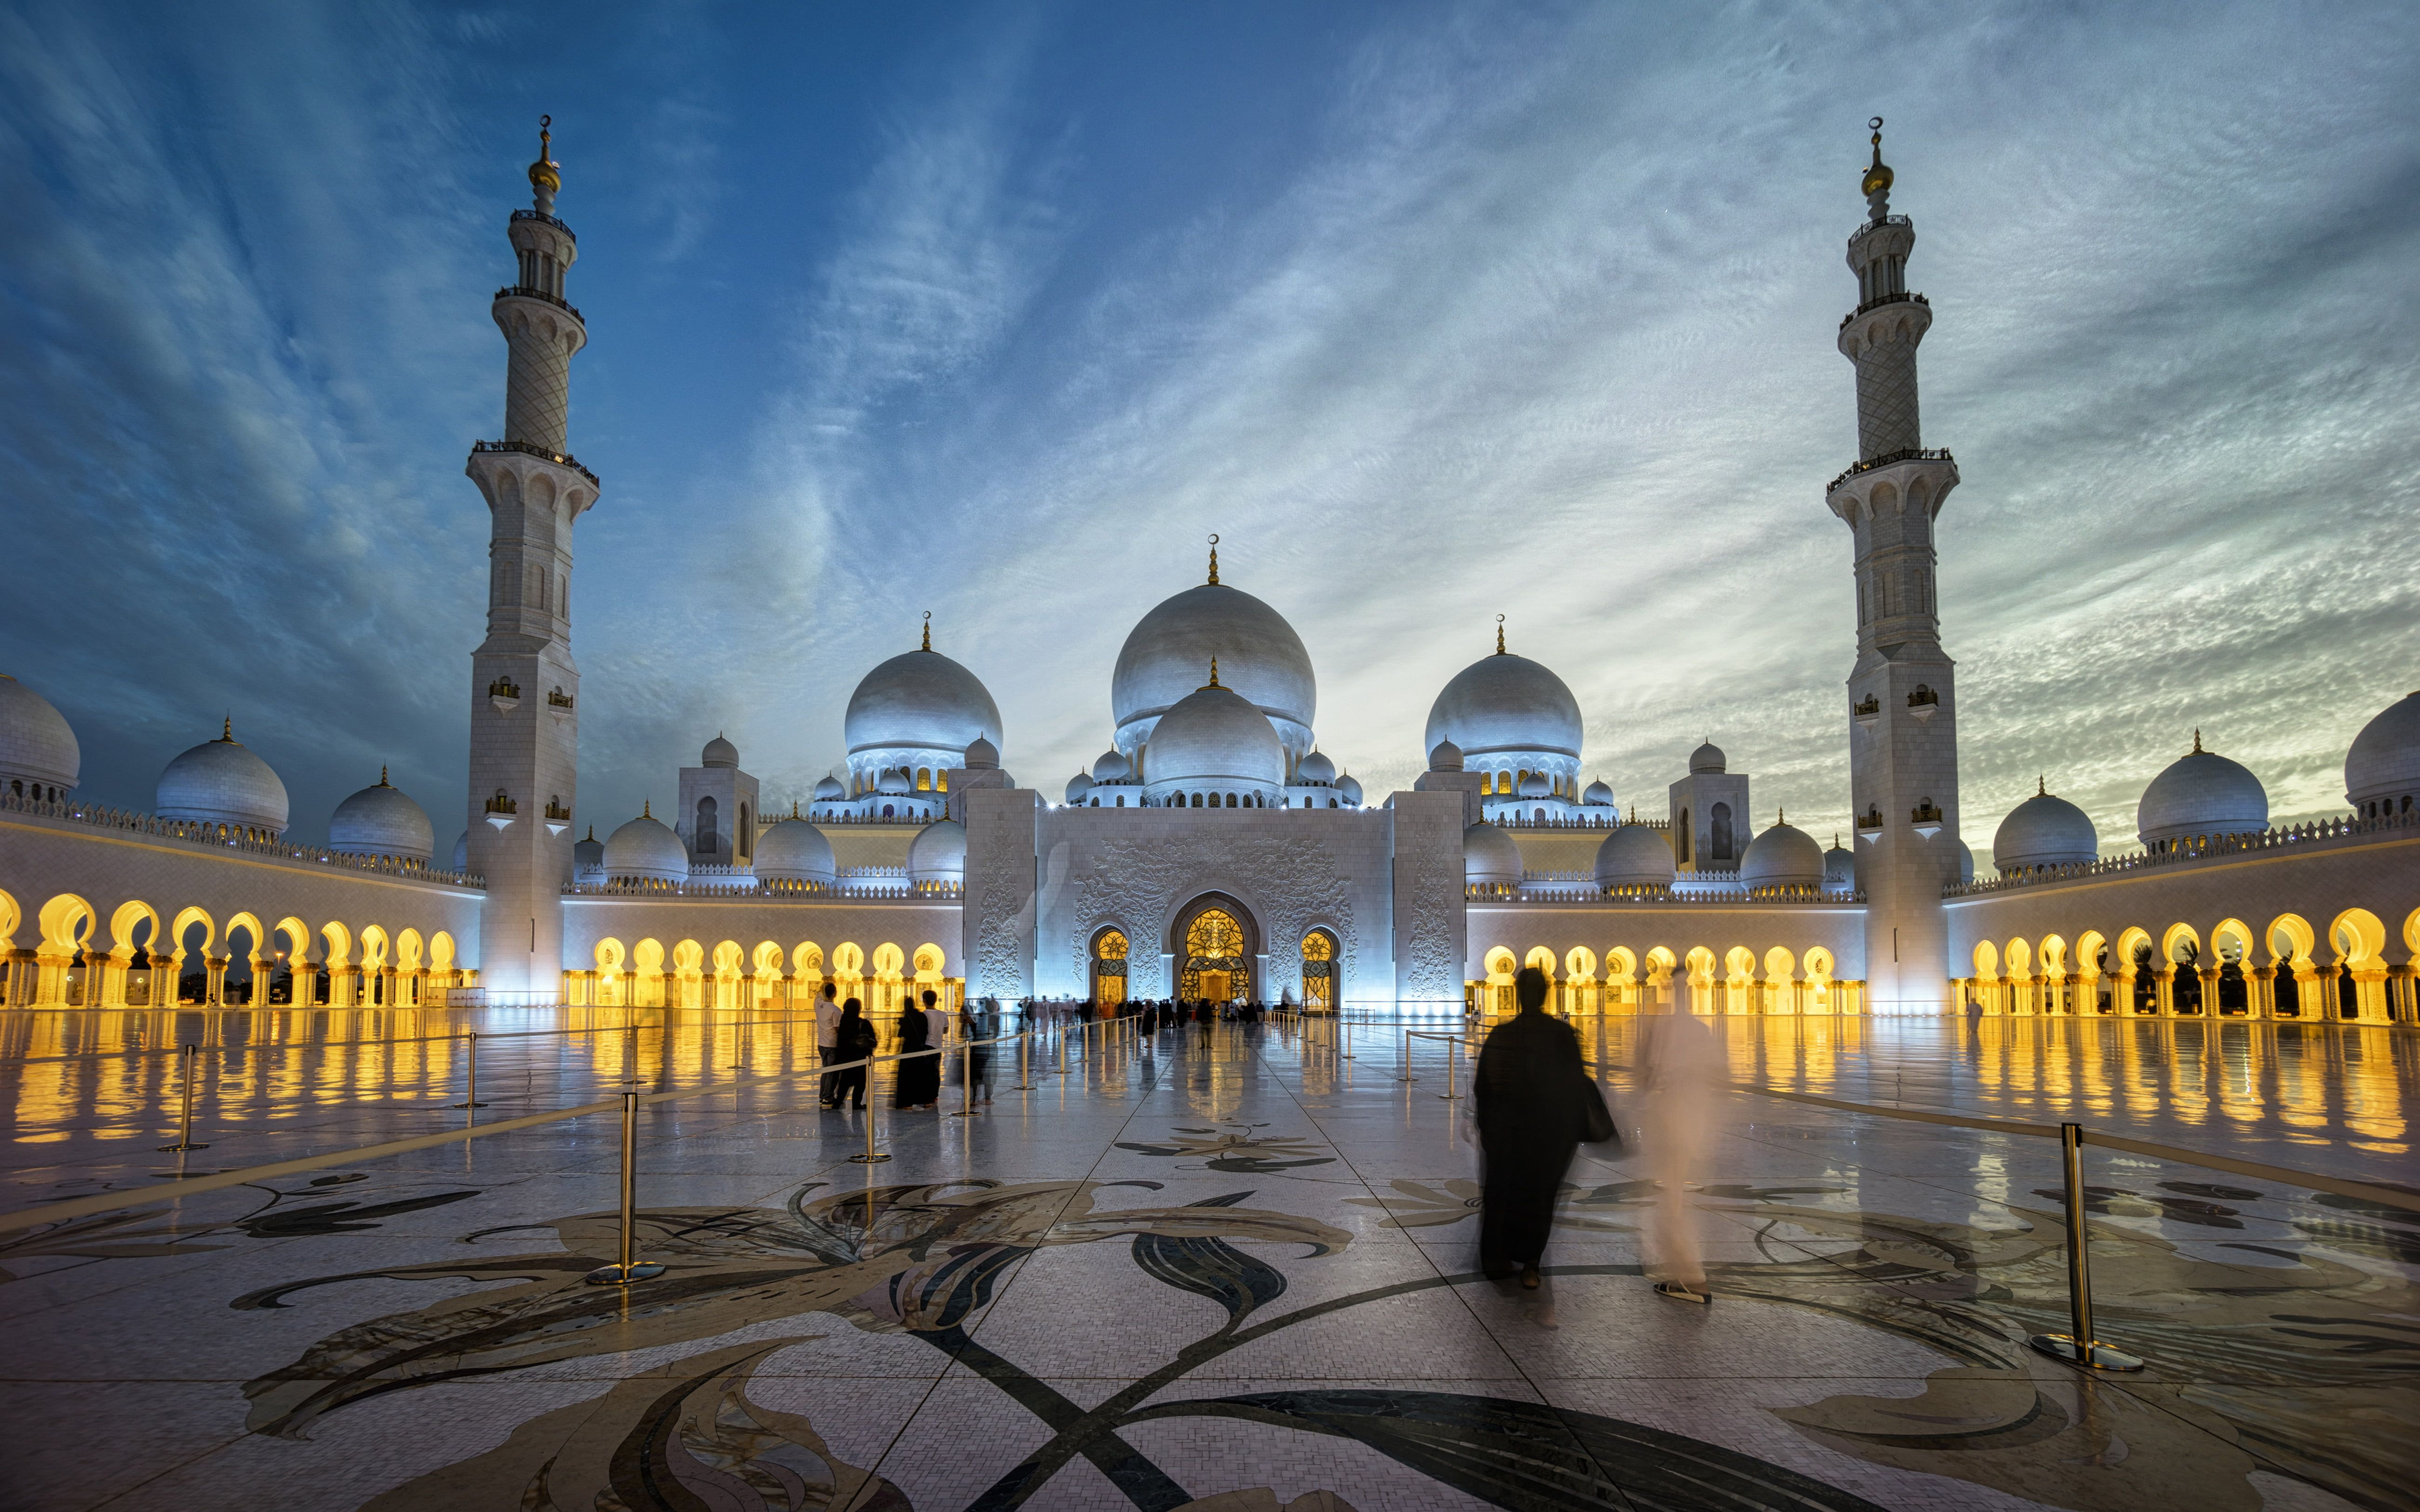 Sheikh Zayed Grand Mosque Centre Abu Dhabi Beautiful Photography In The Night Desktop Hd Wallpaper For Pc Tablet Sheikh Zayed Grand Mosque Grand Mosque Mosque